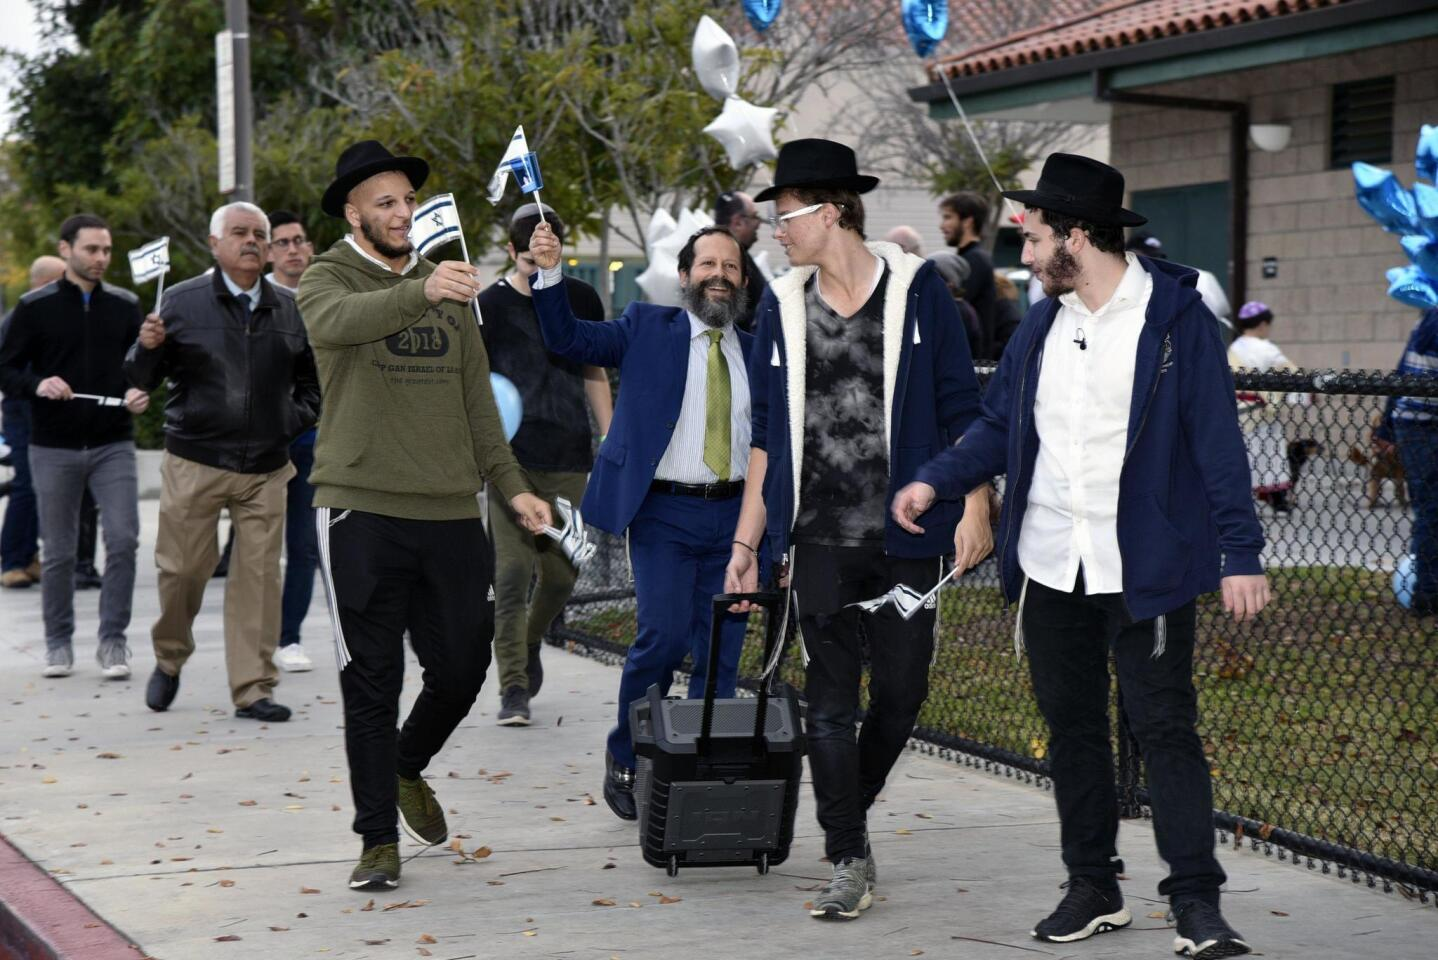 San Diego Jewish community unites and marches together to shine light